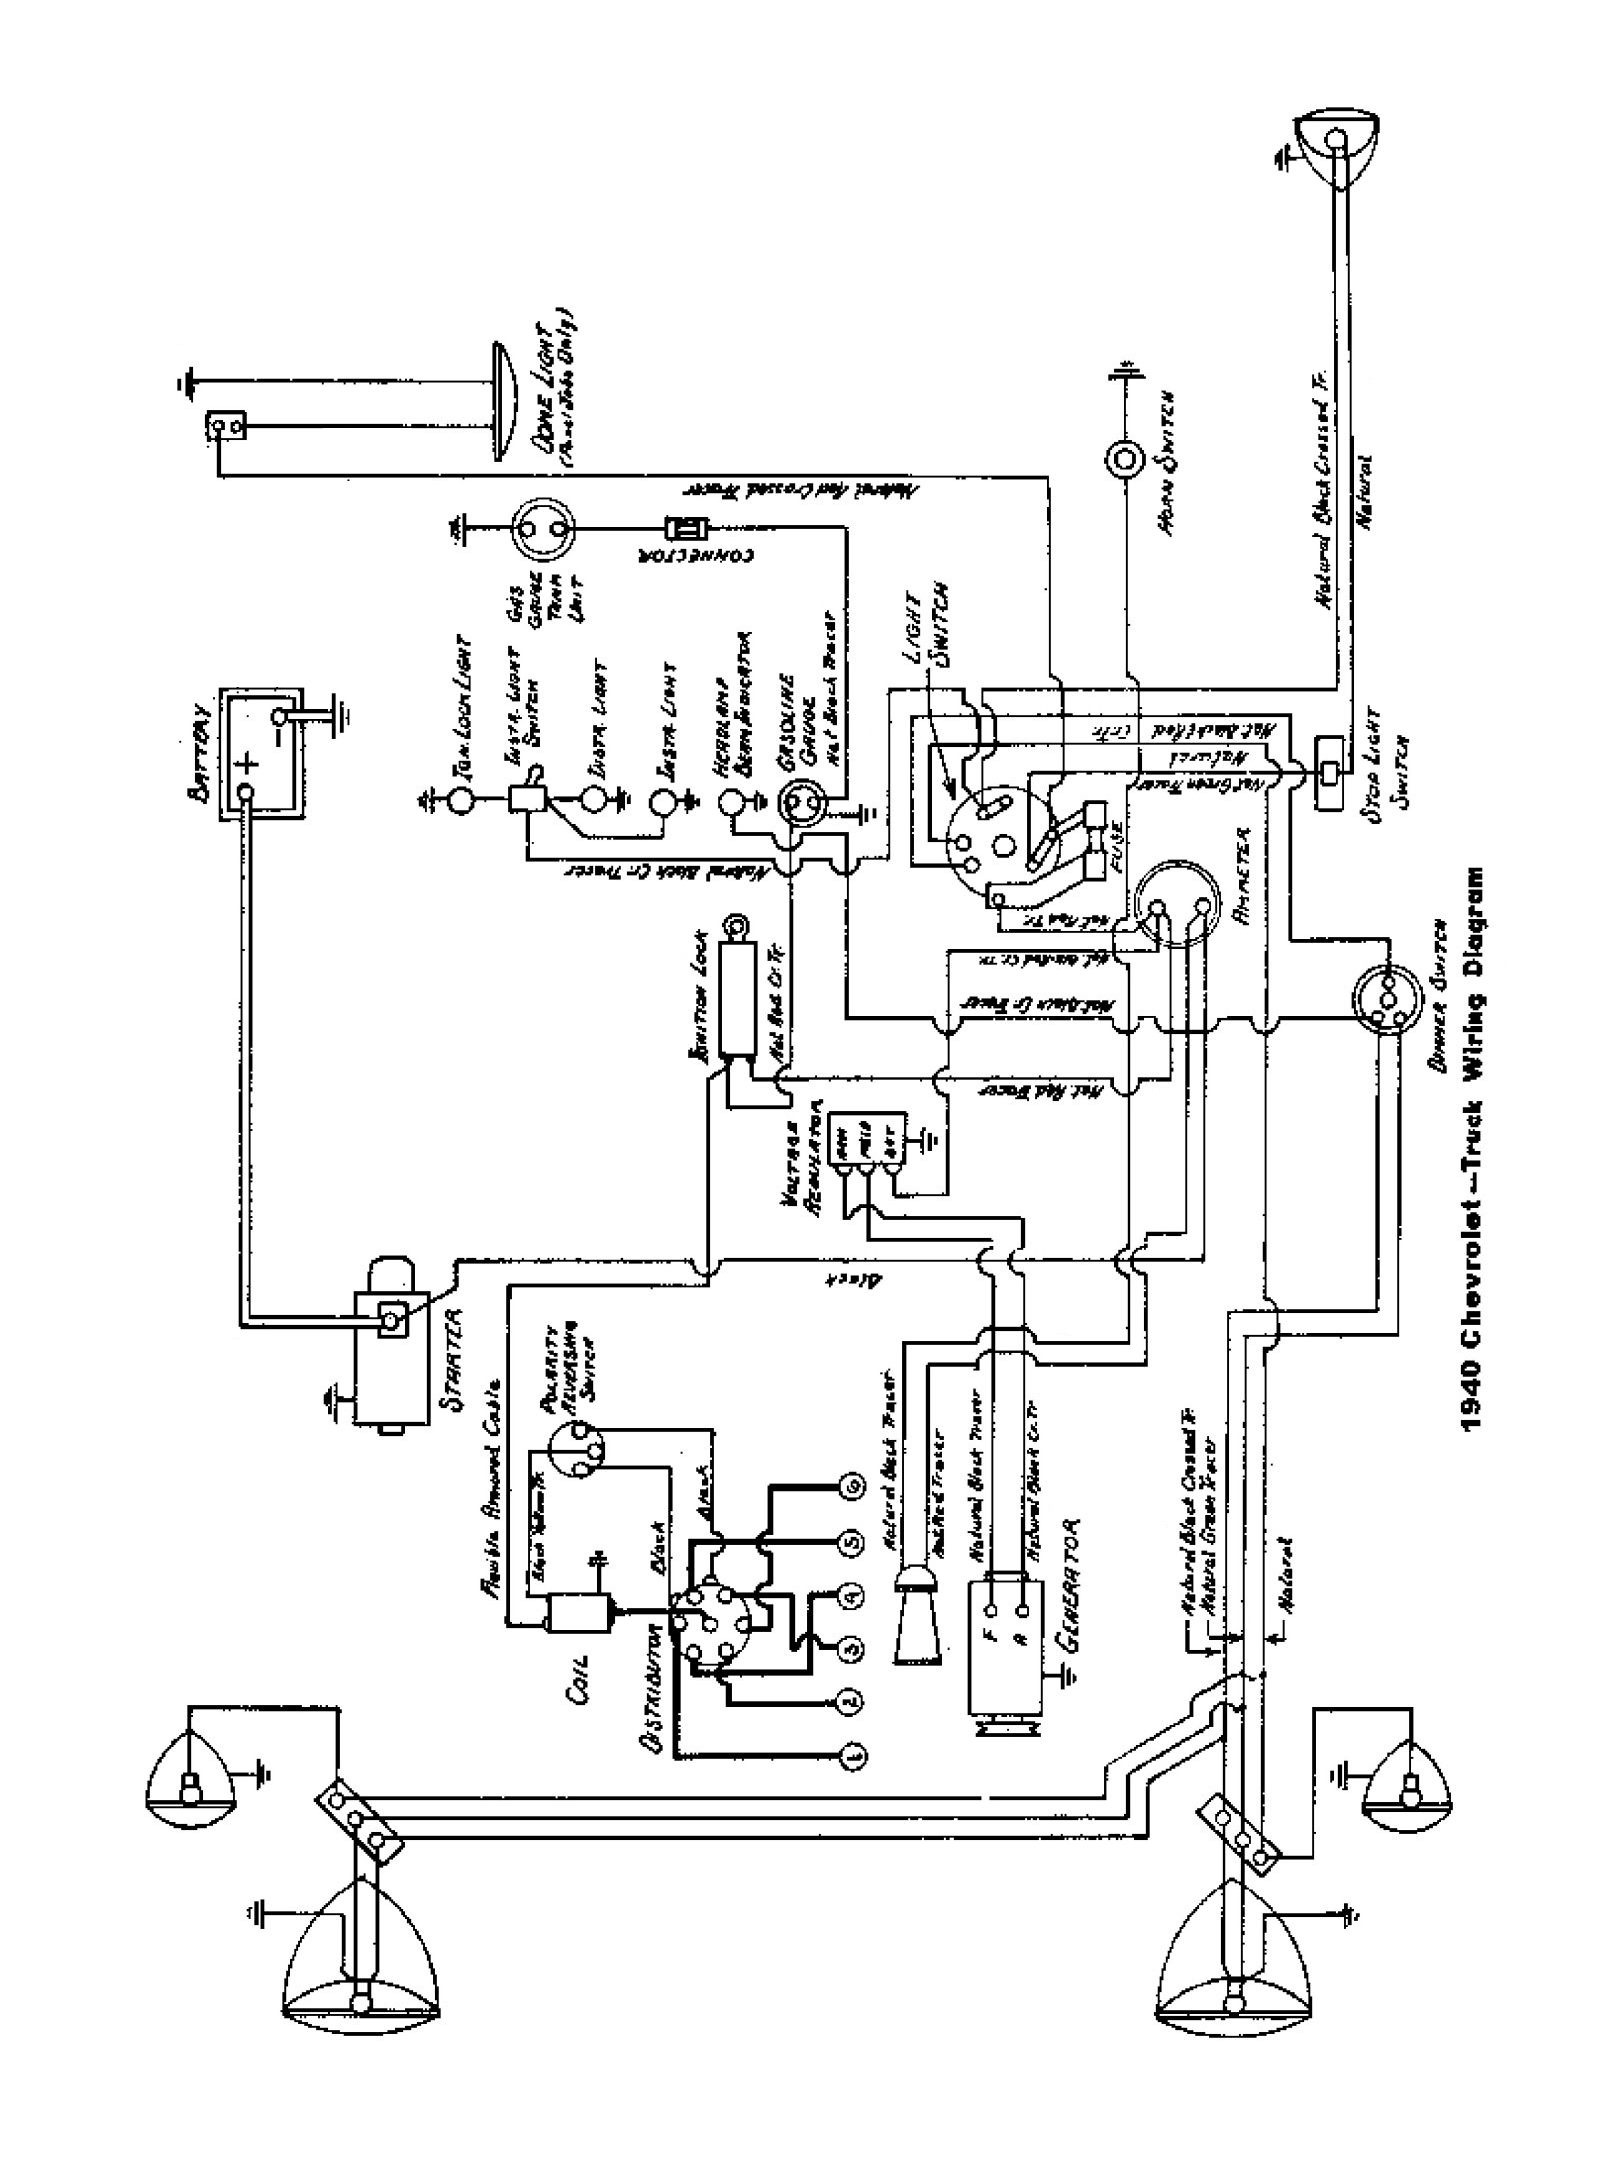 roadmaster wiring diagram pdf with Wiring on How To Remove Sunroof Console 2005 Gmc Envoy in addition 1940 Allis Chalmers B Wiring Diagram additionally 88 Gmc Truck Delay Wiper Wiring Diagram as well 97 Lexus Ls400 Camshaft Sensor Location likewise E Tec 1 6l L91 Wiring Diagram.